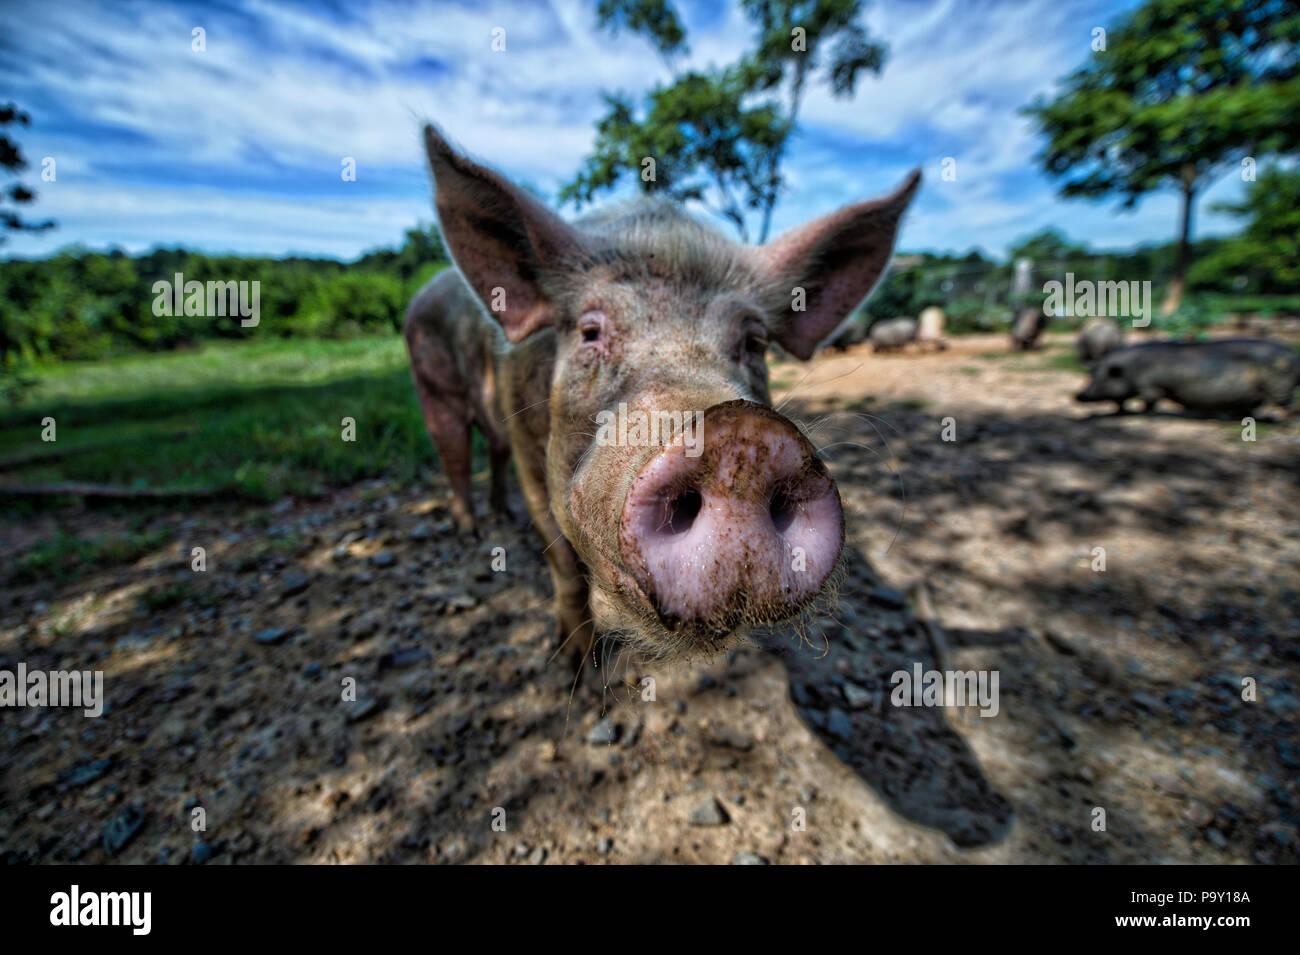 UNITED STATES: July 19, 2018: Rikki's Refuge, now in its 20th year, devotes 100 of its 450 acres to animal care and the rest is left wild for farm ani - Stock Image